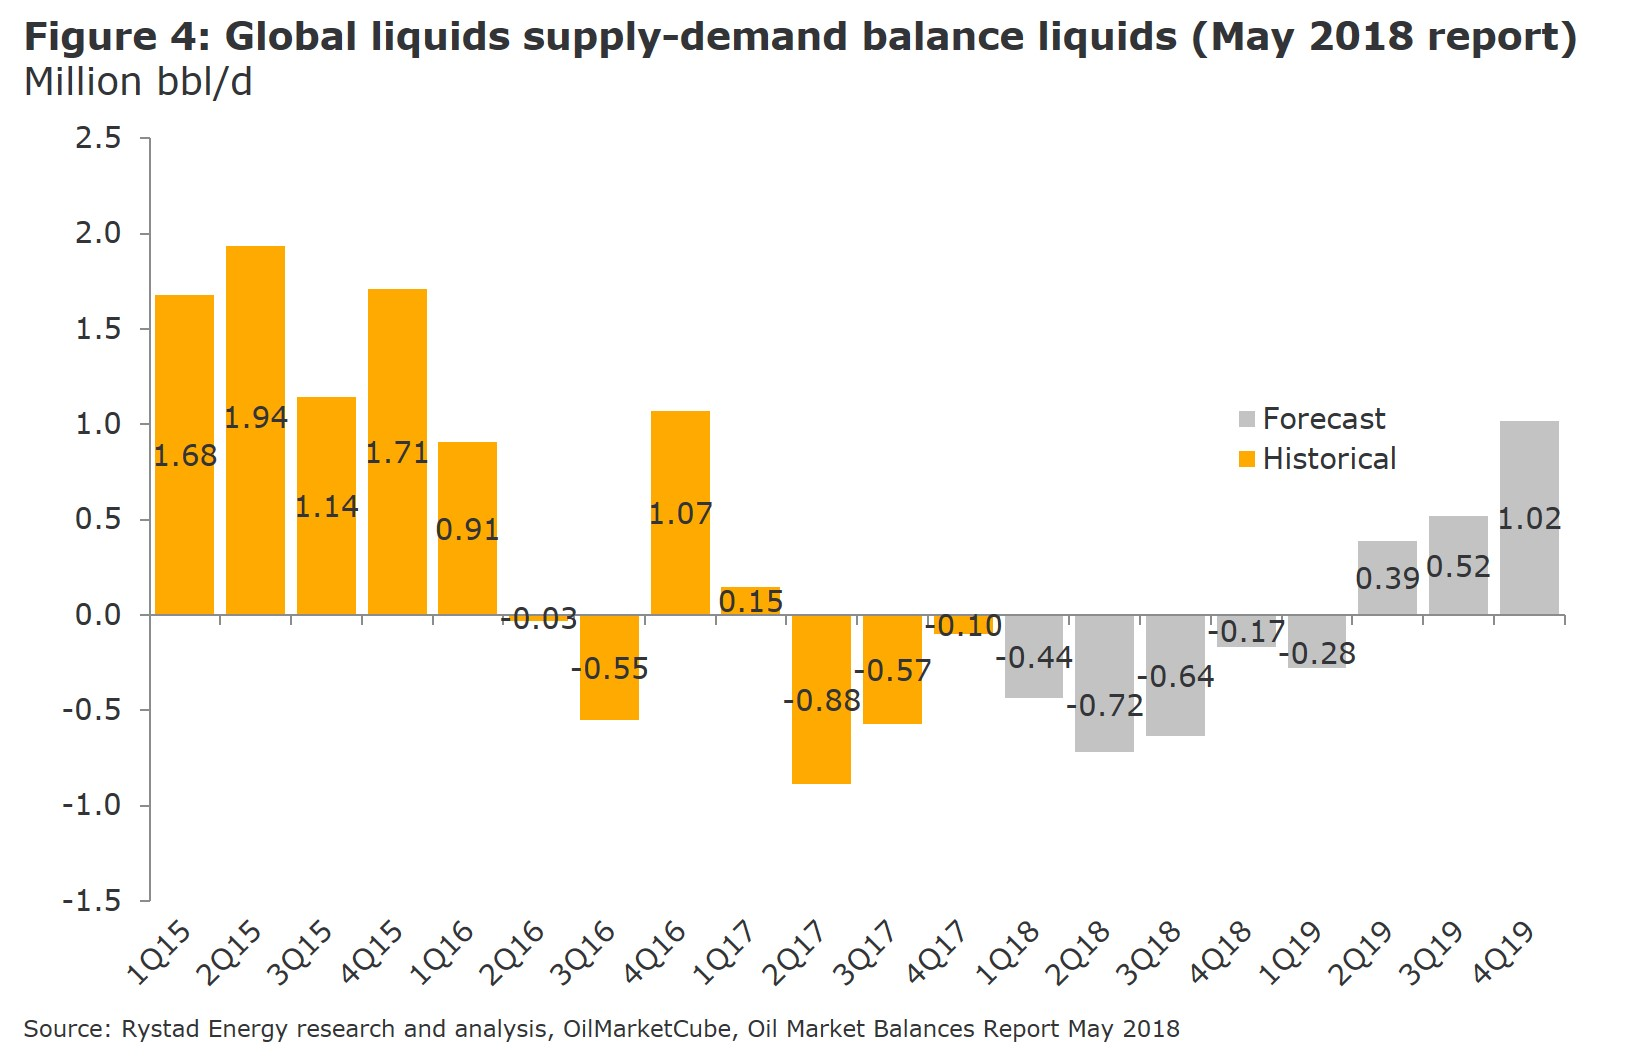 Figure 4: A bar chart showing Global liquids supply-demand balance liquids (May 2018 report)